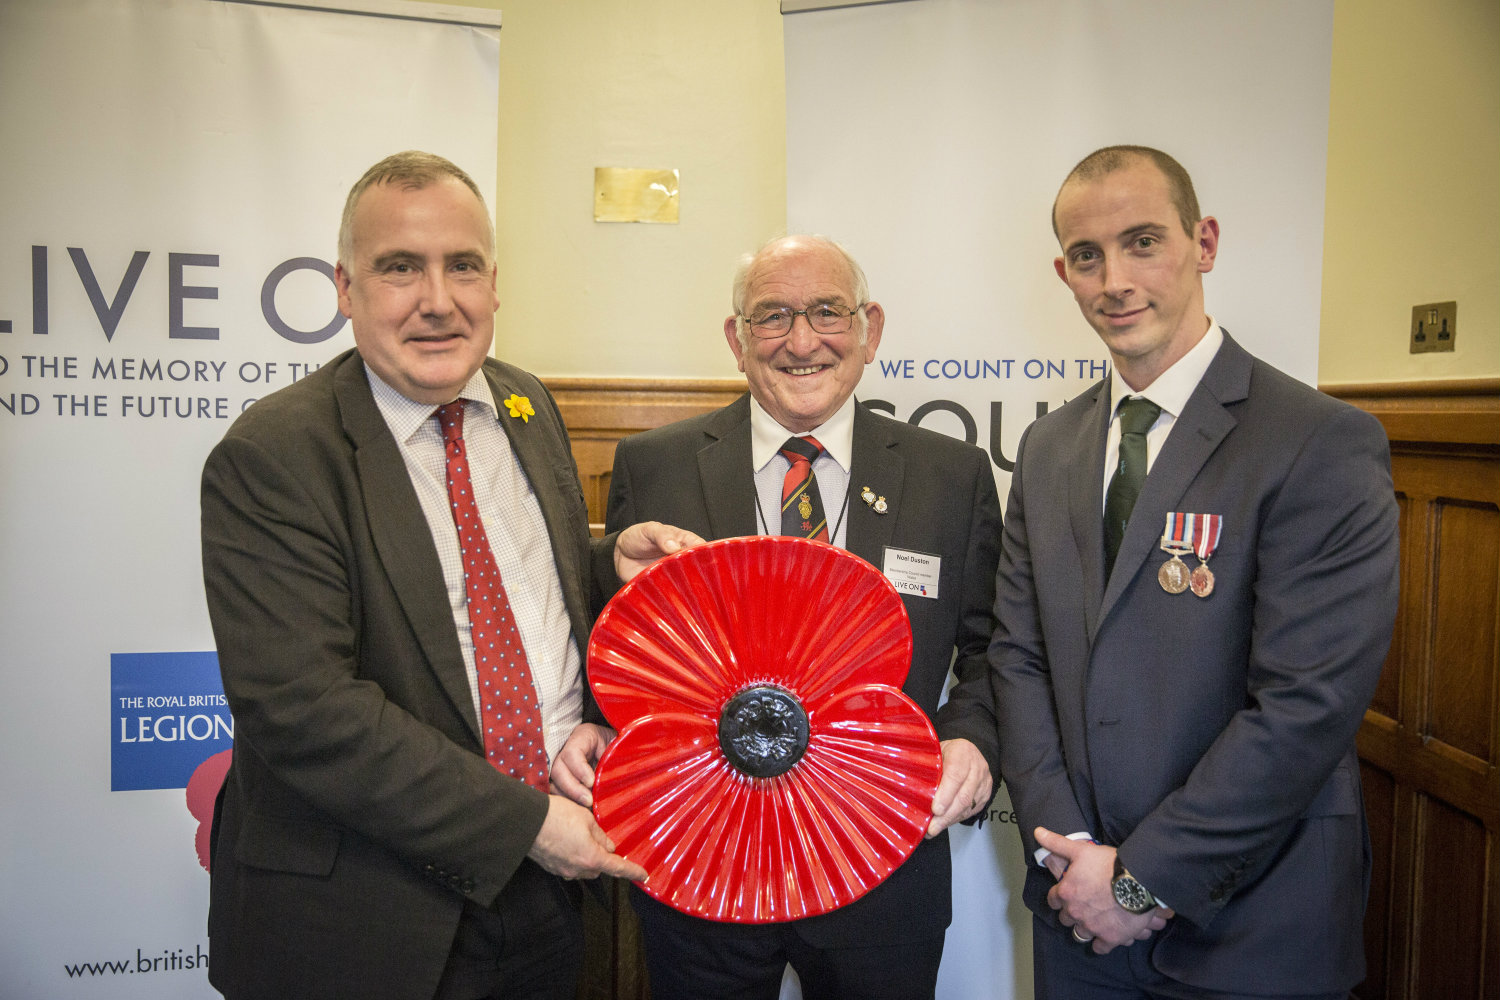 Mark Williams MP shows support for Armed Forces community in Wales